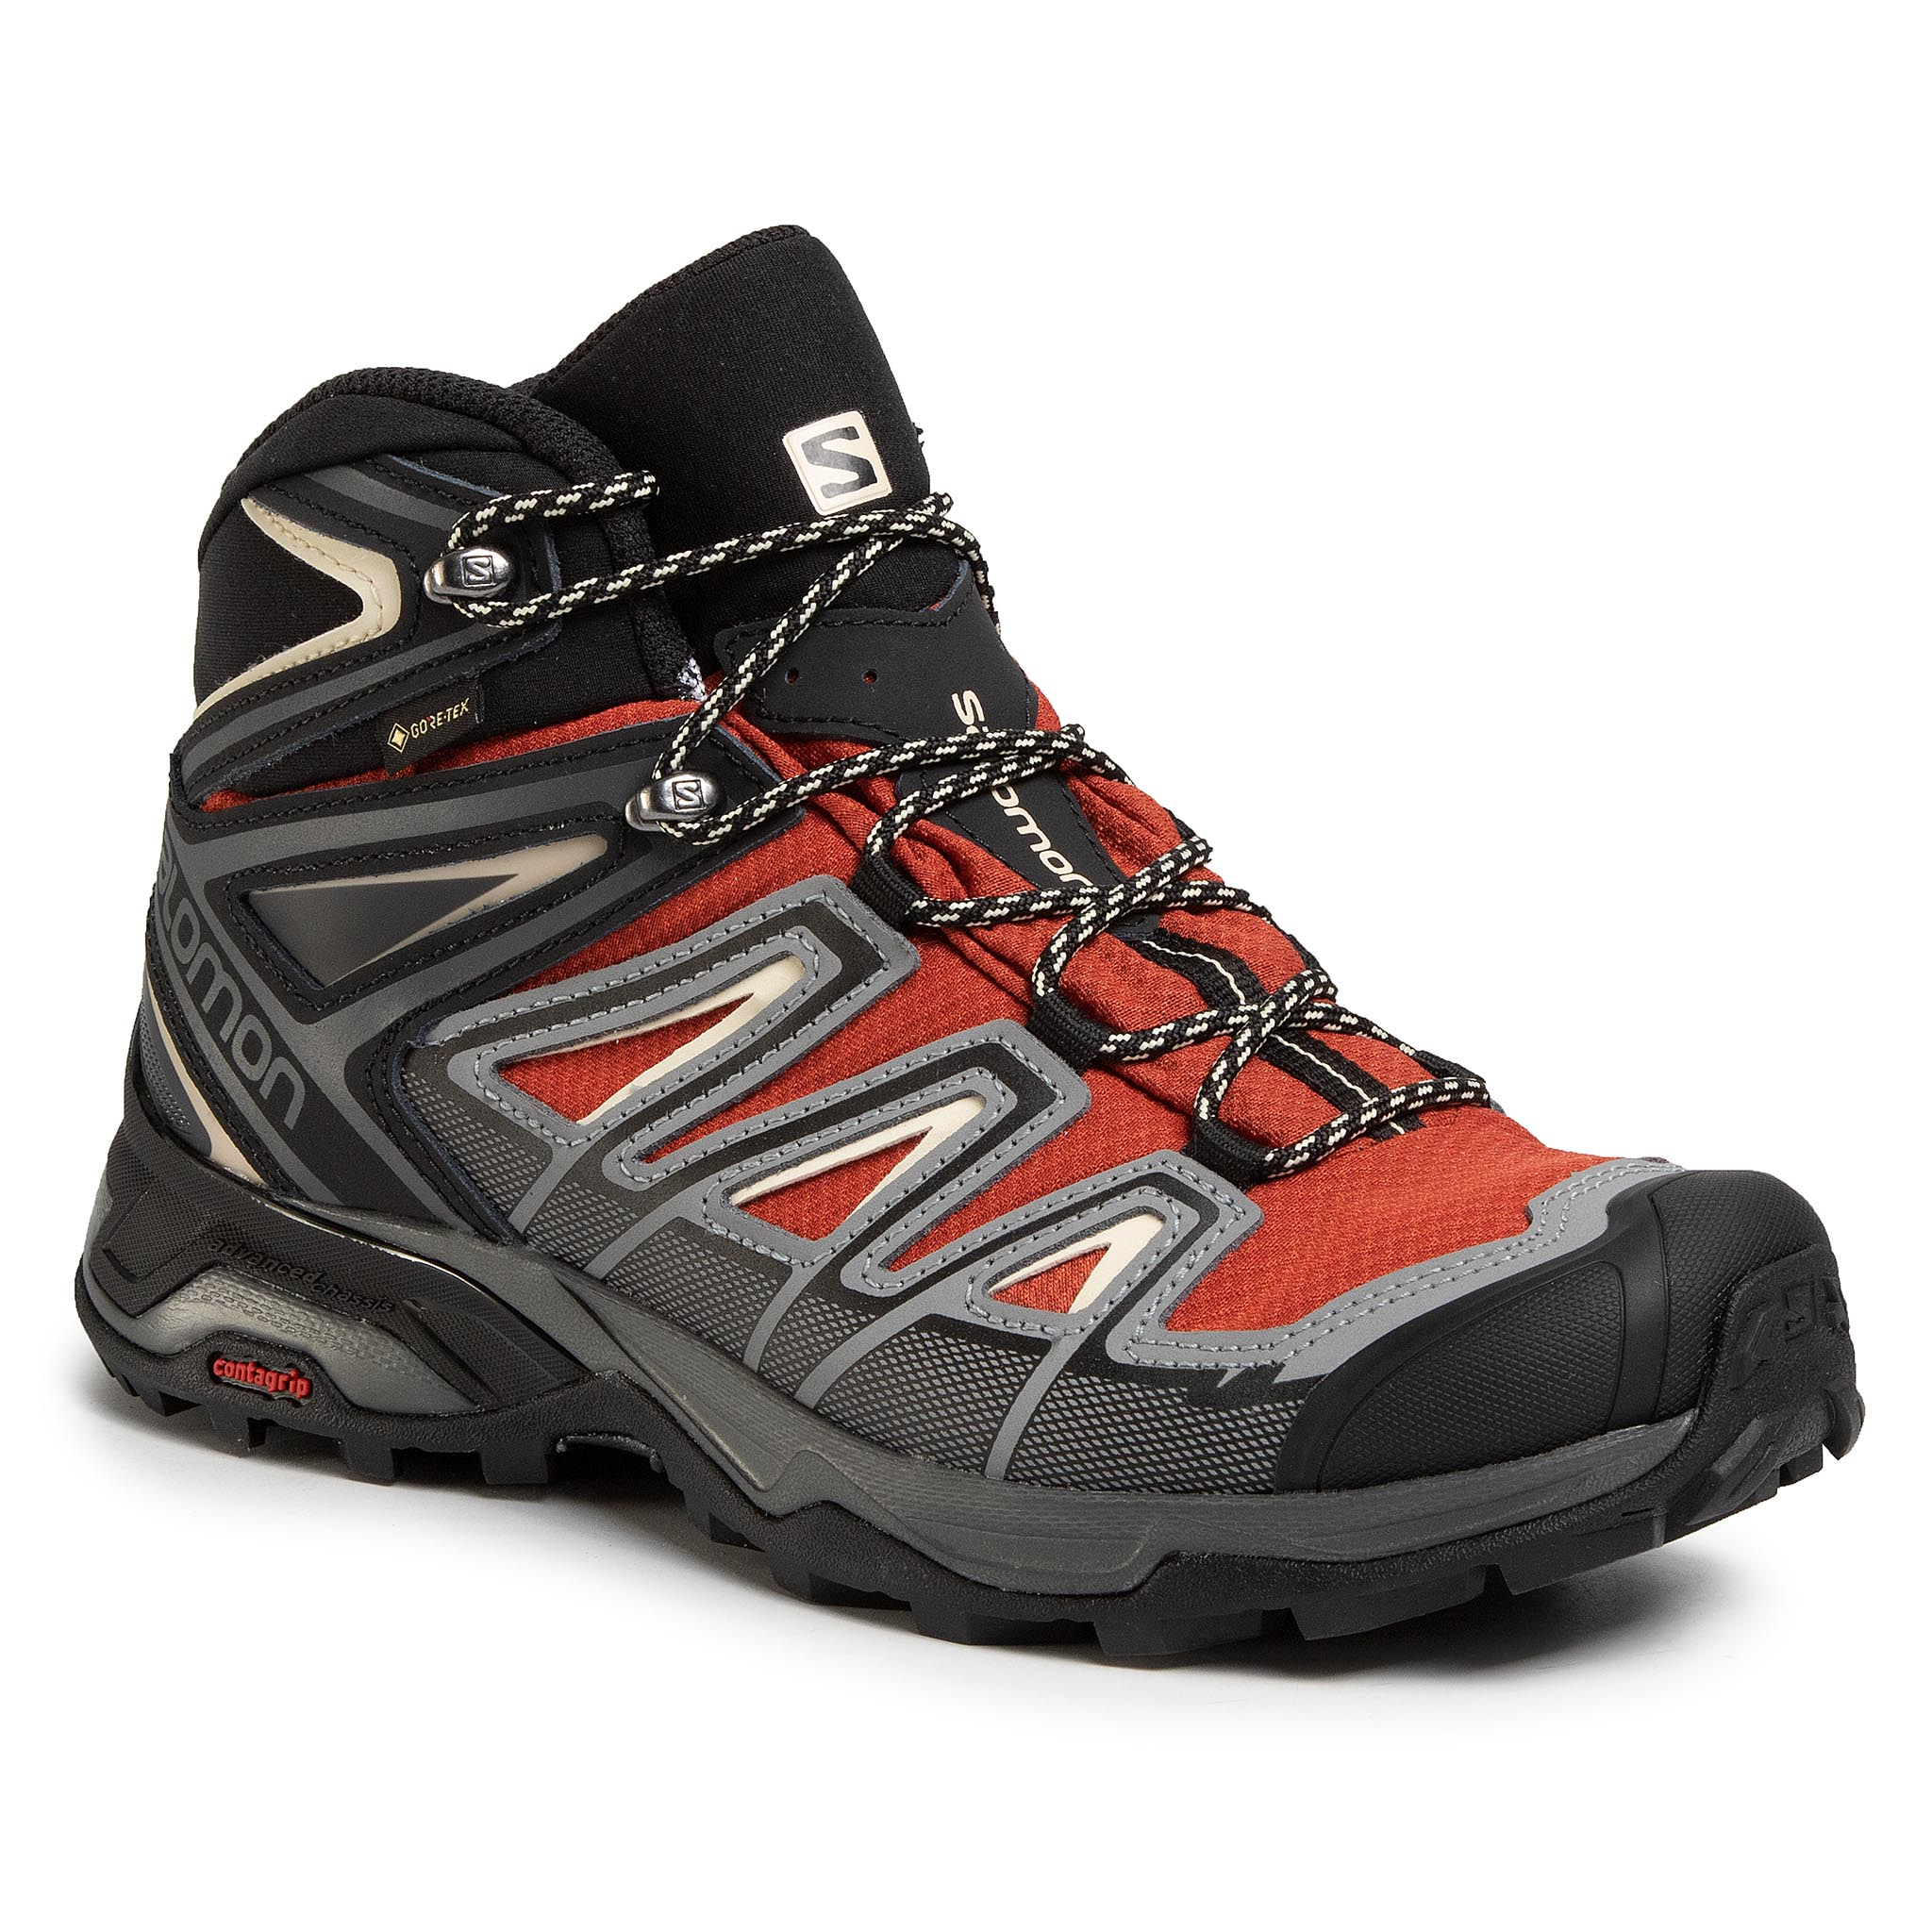 Trekkings Salomon - X Ultra 3 Mid Gtx Gore-Tex 409905 27 W0 Burnt Brick/Black/Bleached Sand imagine epantofi.ro 2021